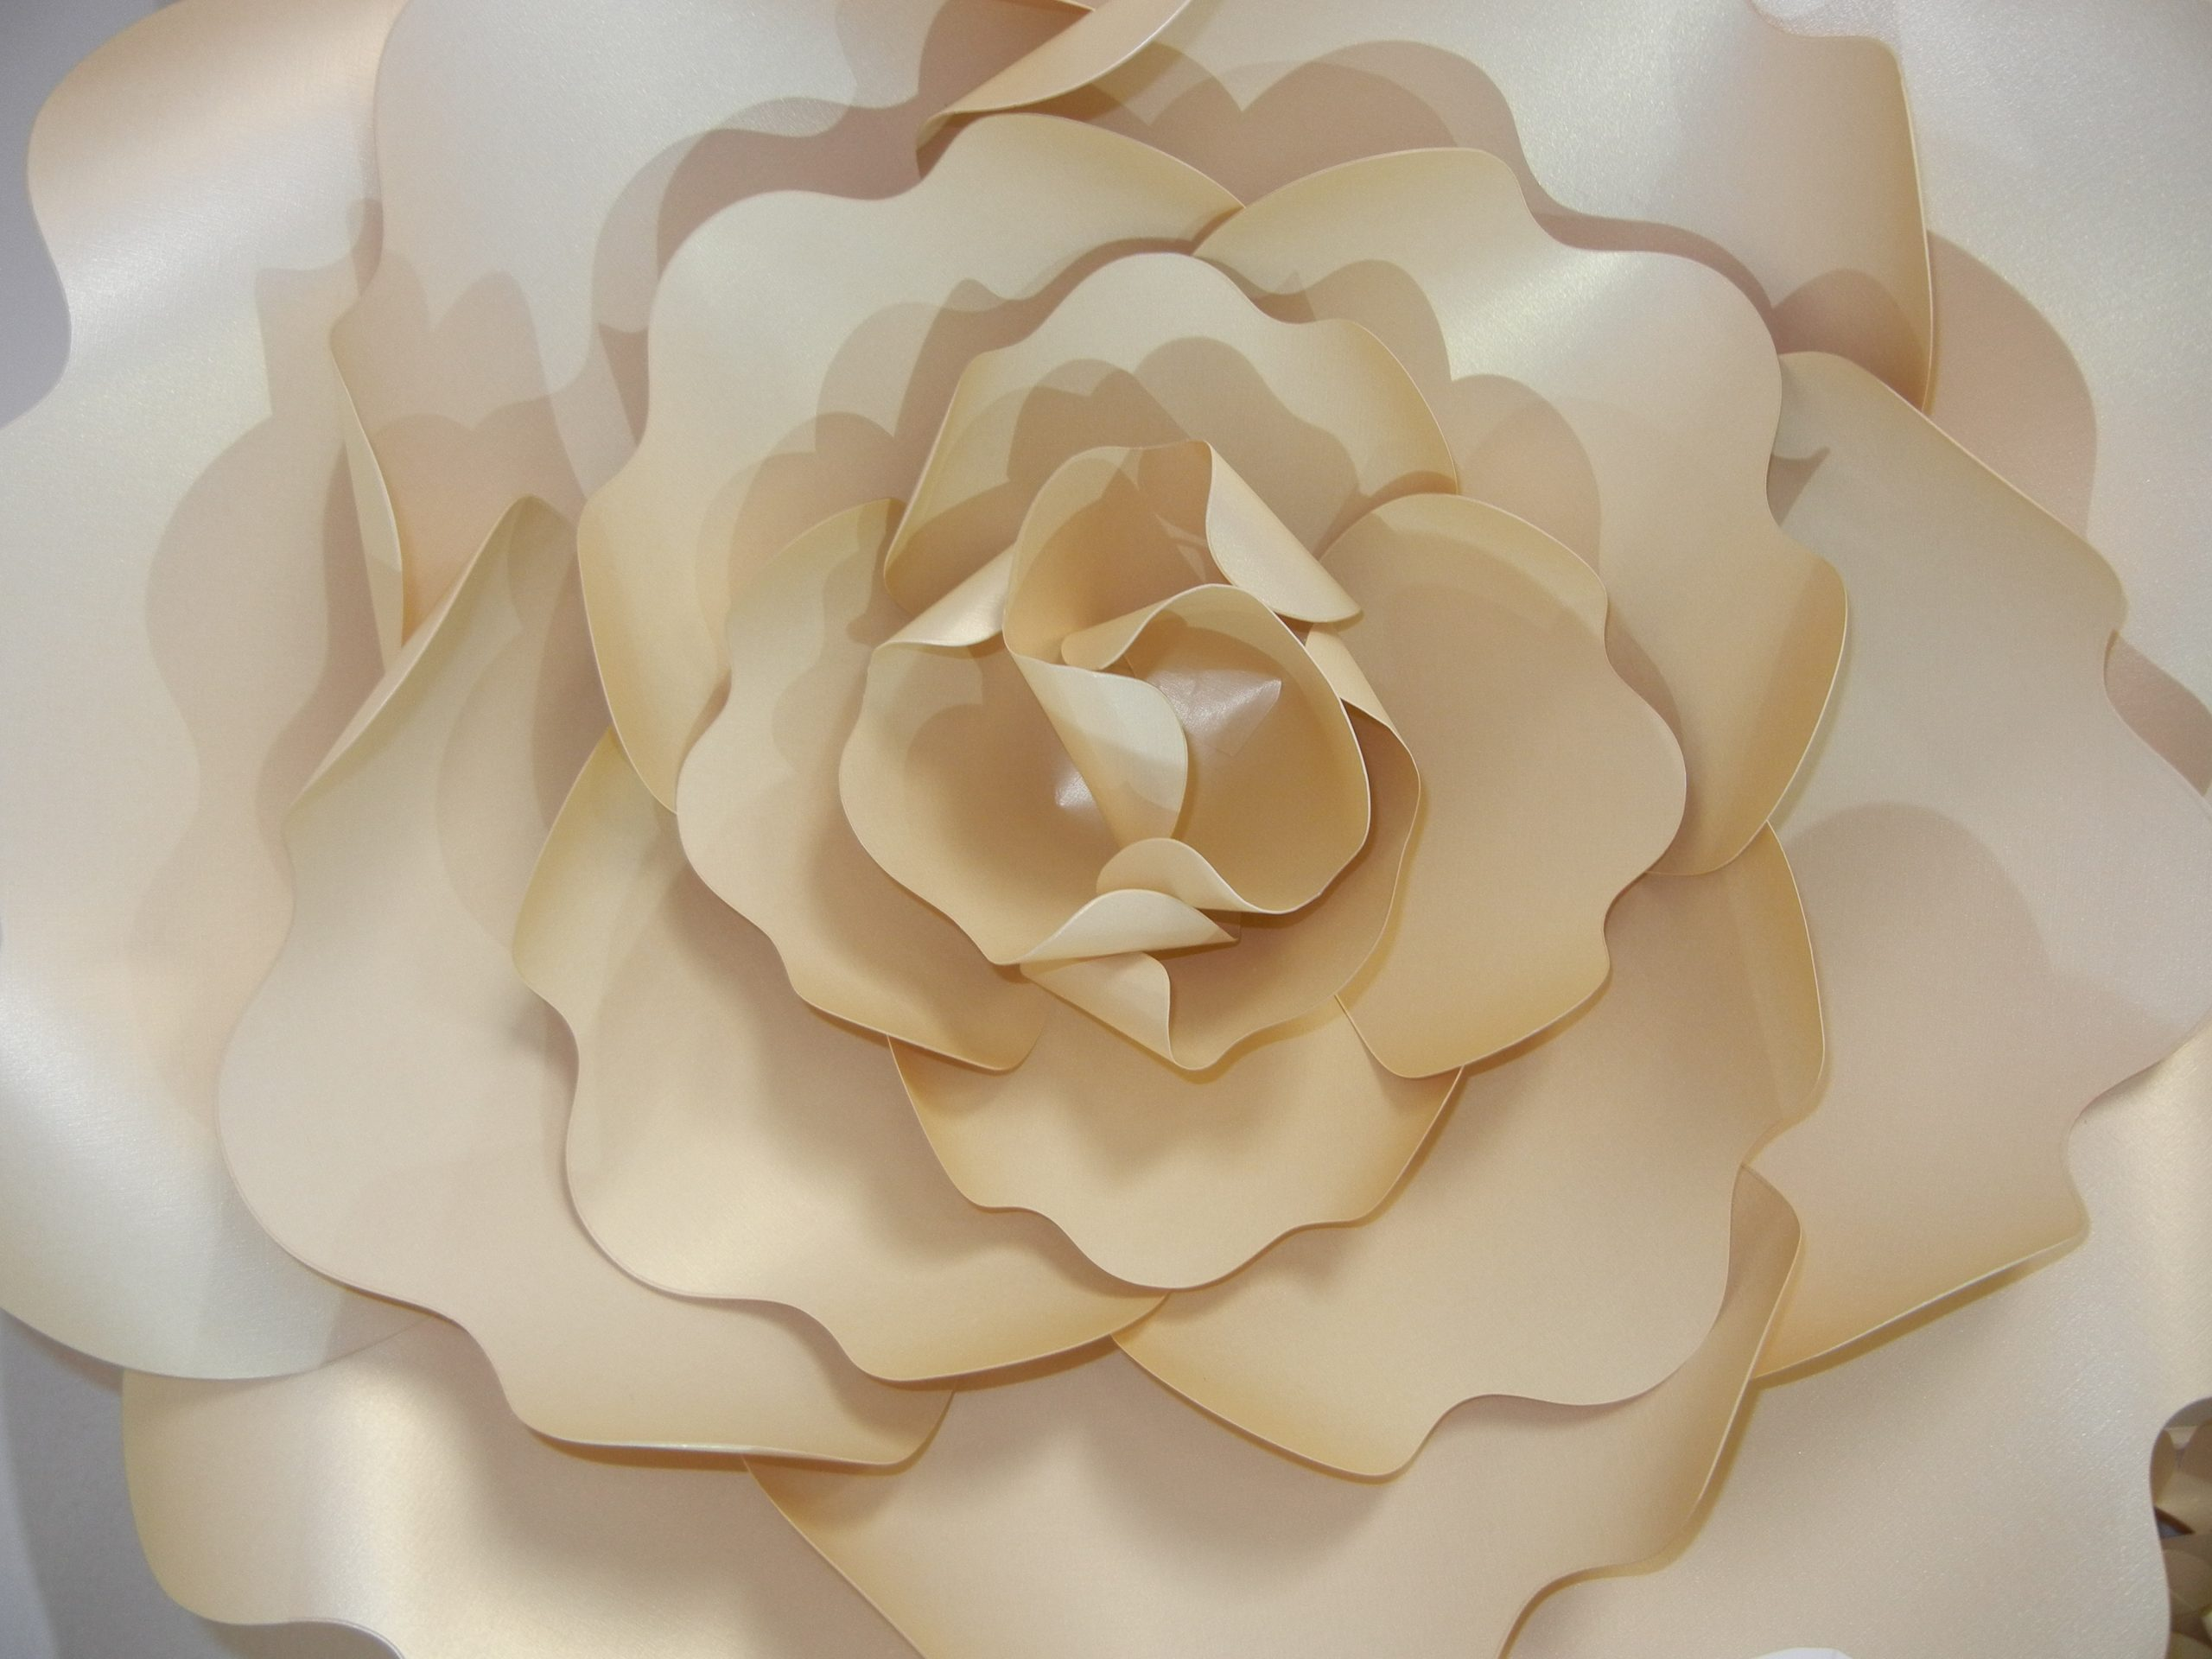 3D Paper flower wonder wall collection and sculptures Art People Gallery